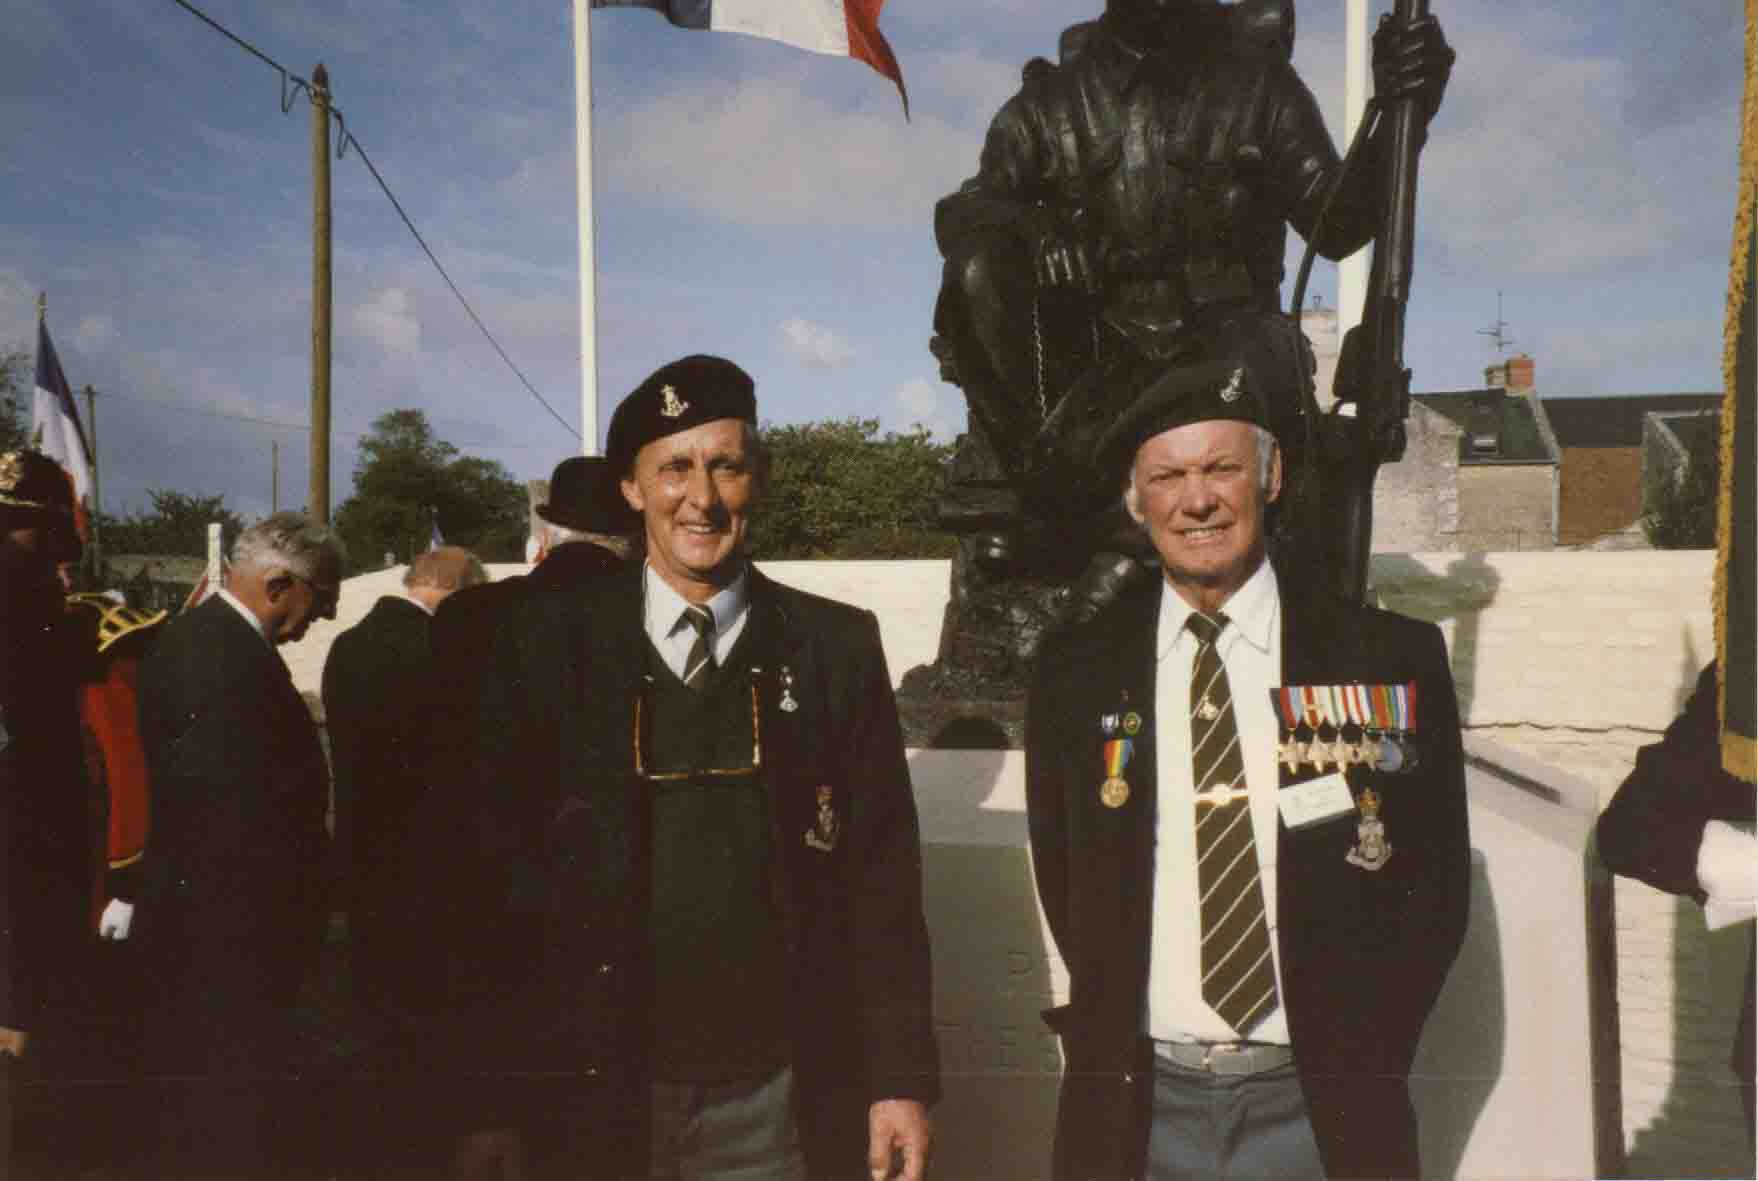 At the inauguration of the Crepon Memorial ww2